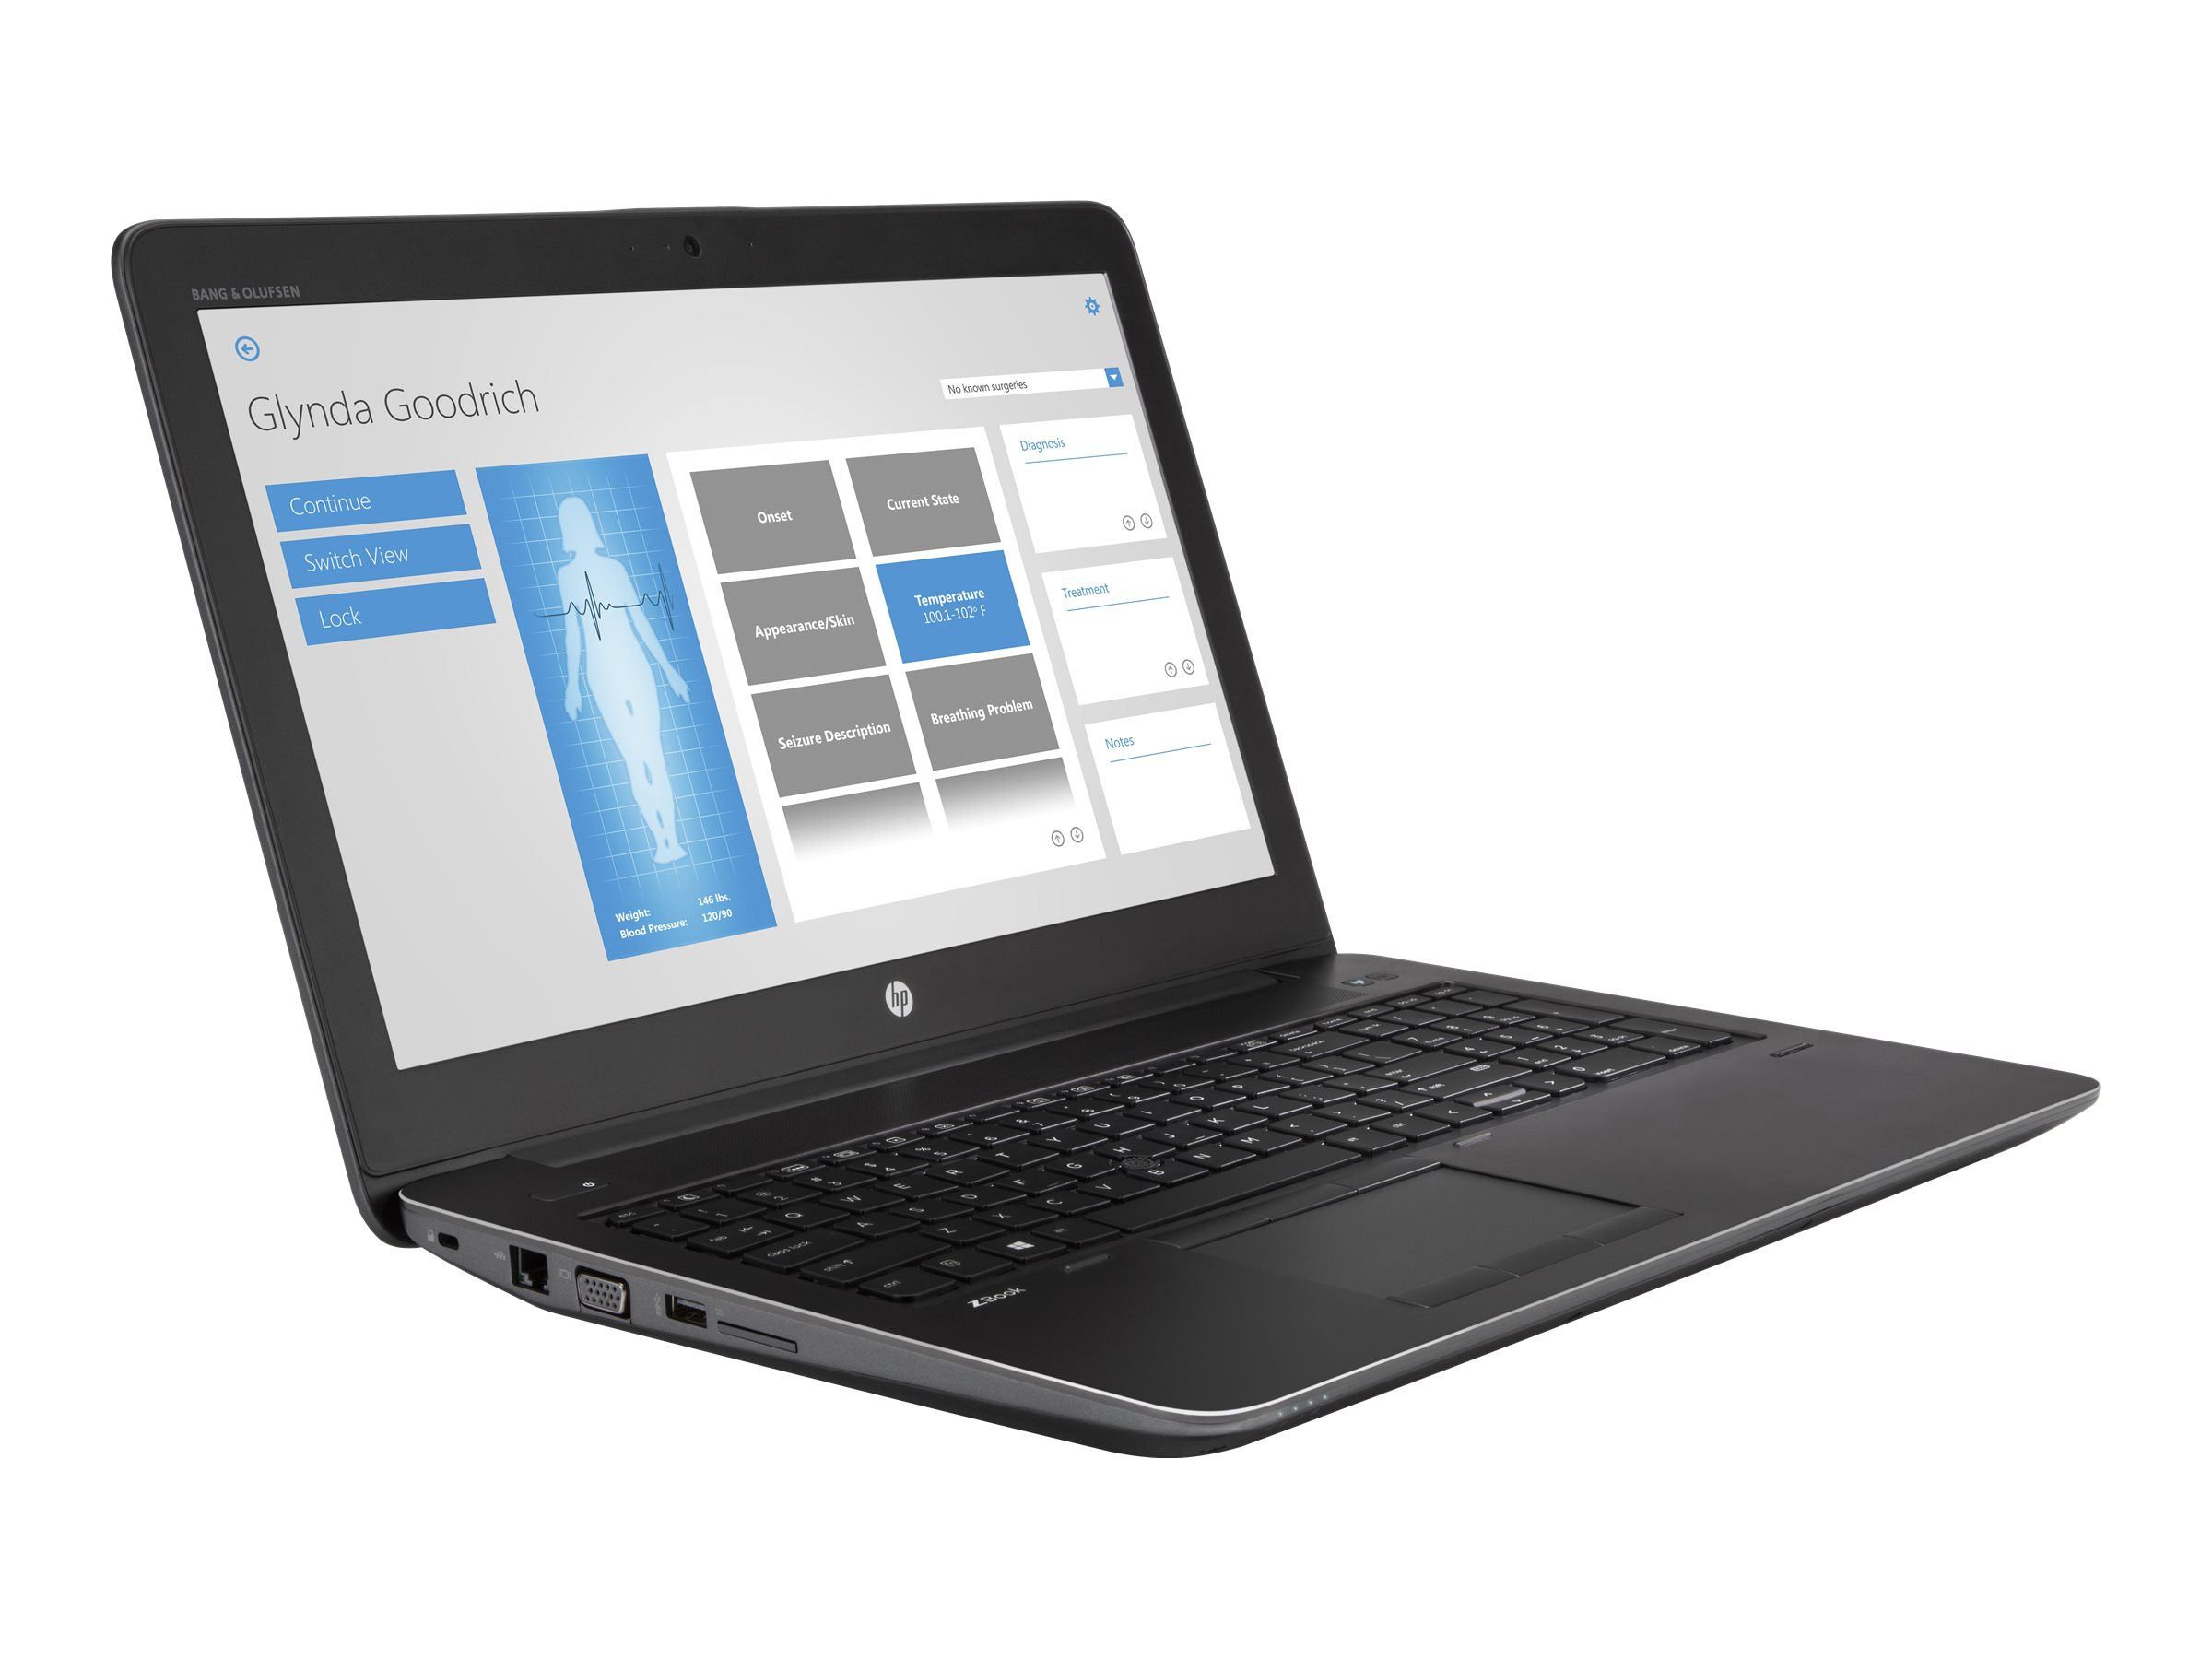 HP ZBook 15 G4 Mobile Workstation - Core i7 7700HQ / 2.8 GHz - Win 10 Pro 64-Bit - 8 GB RAM - 256 GB HDD NVMe, HP Turbo Drive G2, TLC - 39.6 cm (15.6